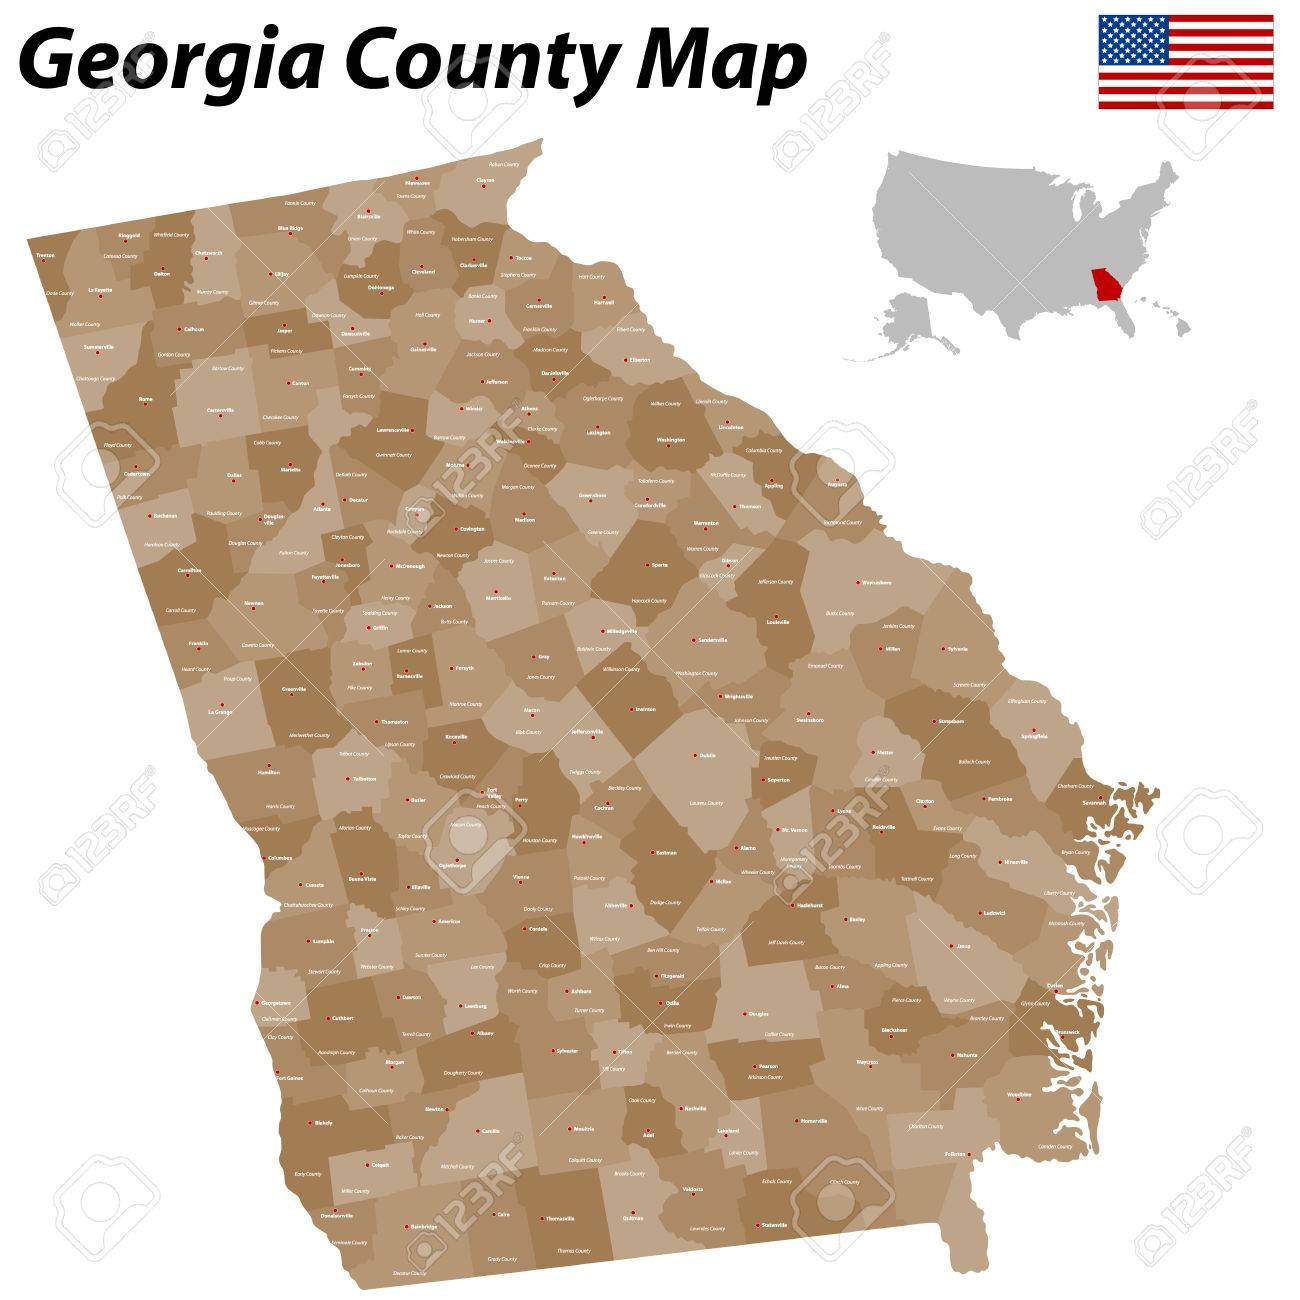 Georgia Map Of Cities And Counties.A Large Detailed And Colored Map Of The State Of Georgia With